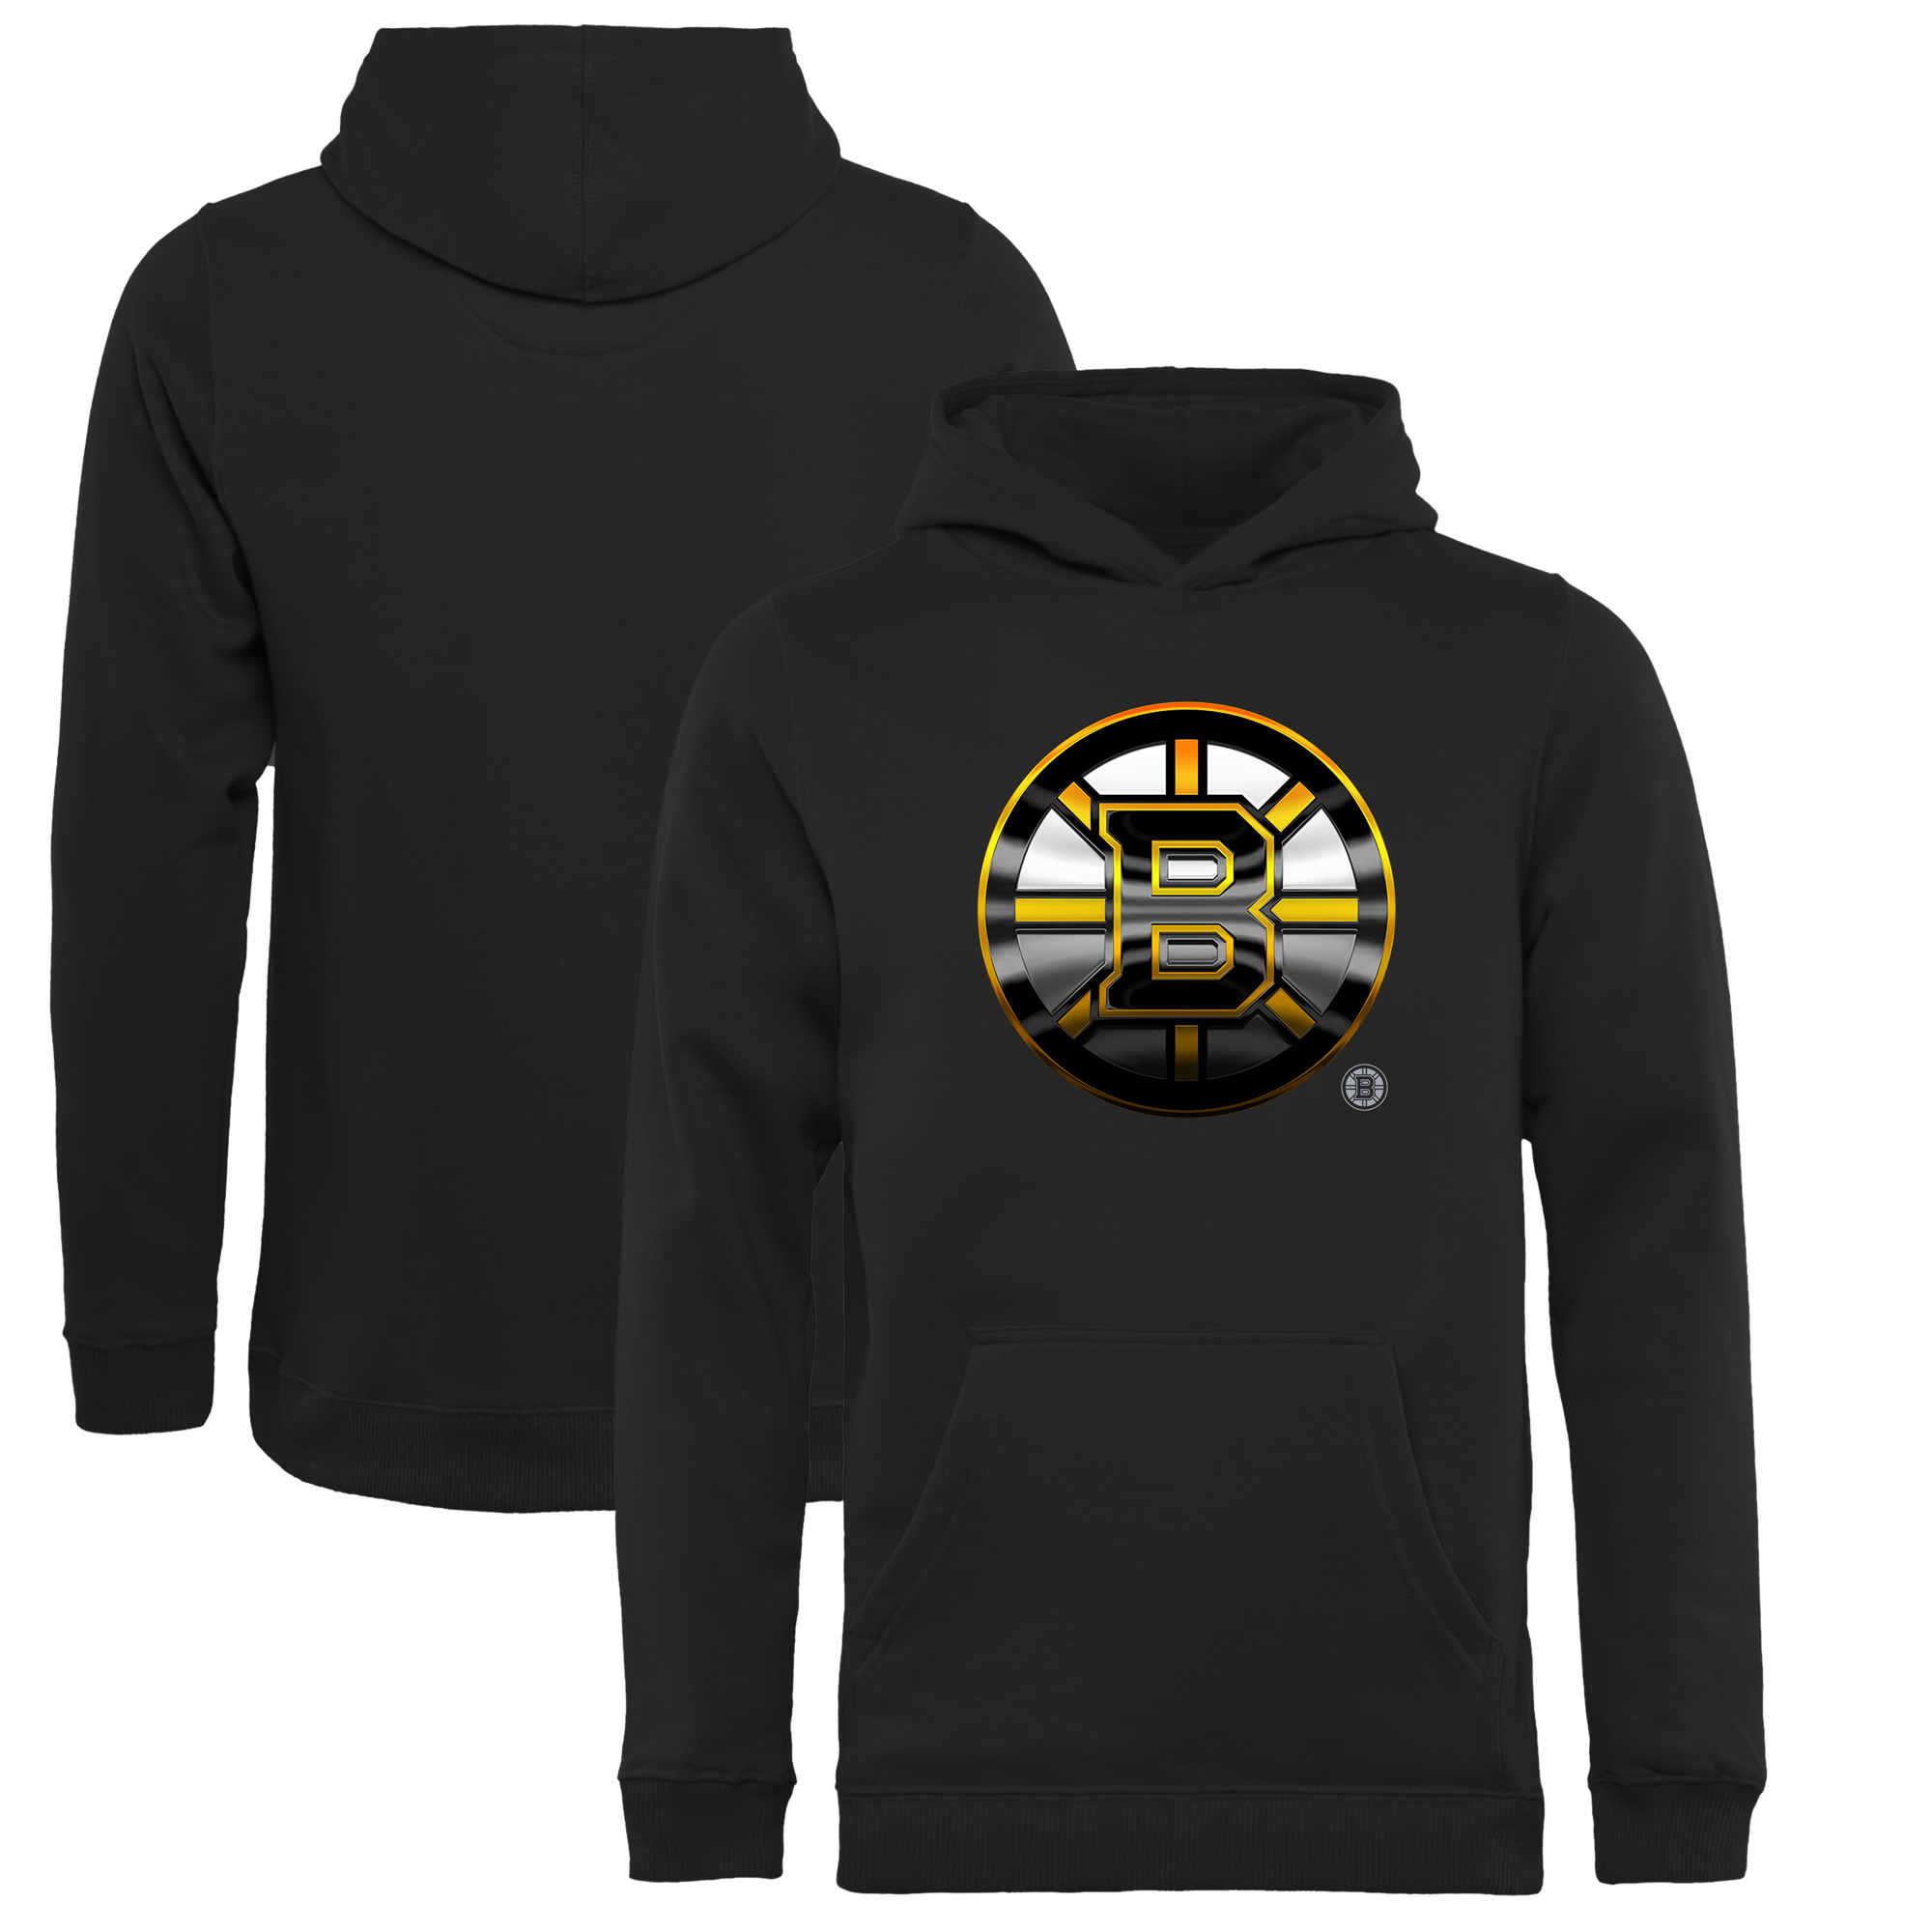 Boston Bruins Fanatics Branded Youth Midnight Mascot Pullover Hoodie - Black